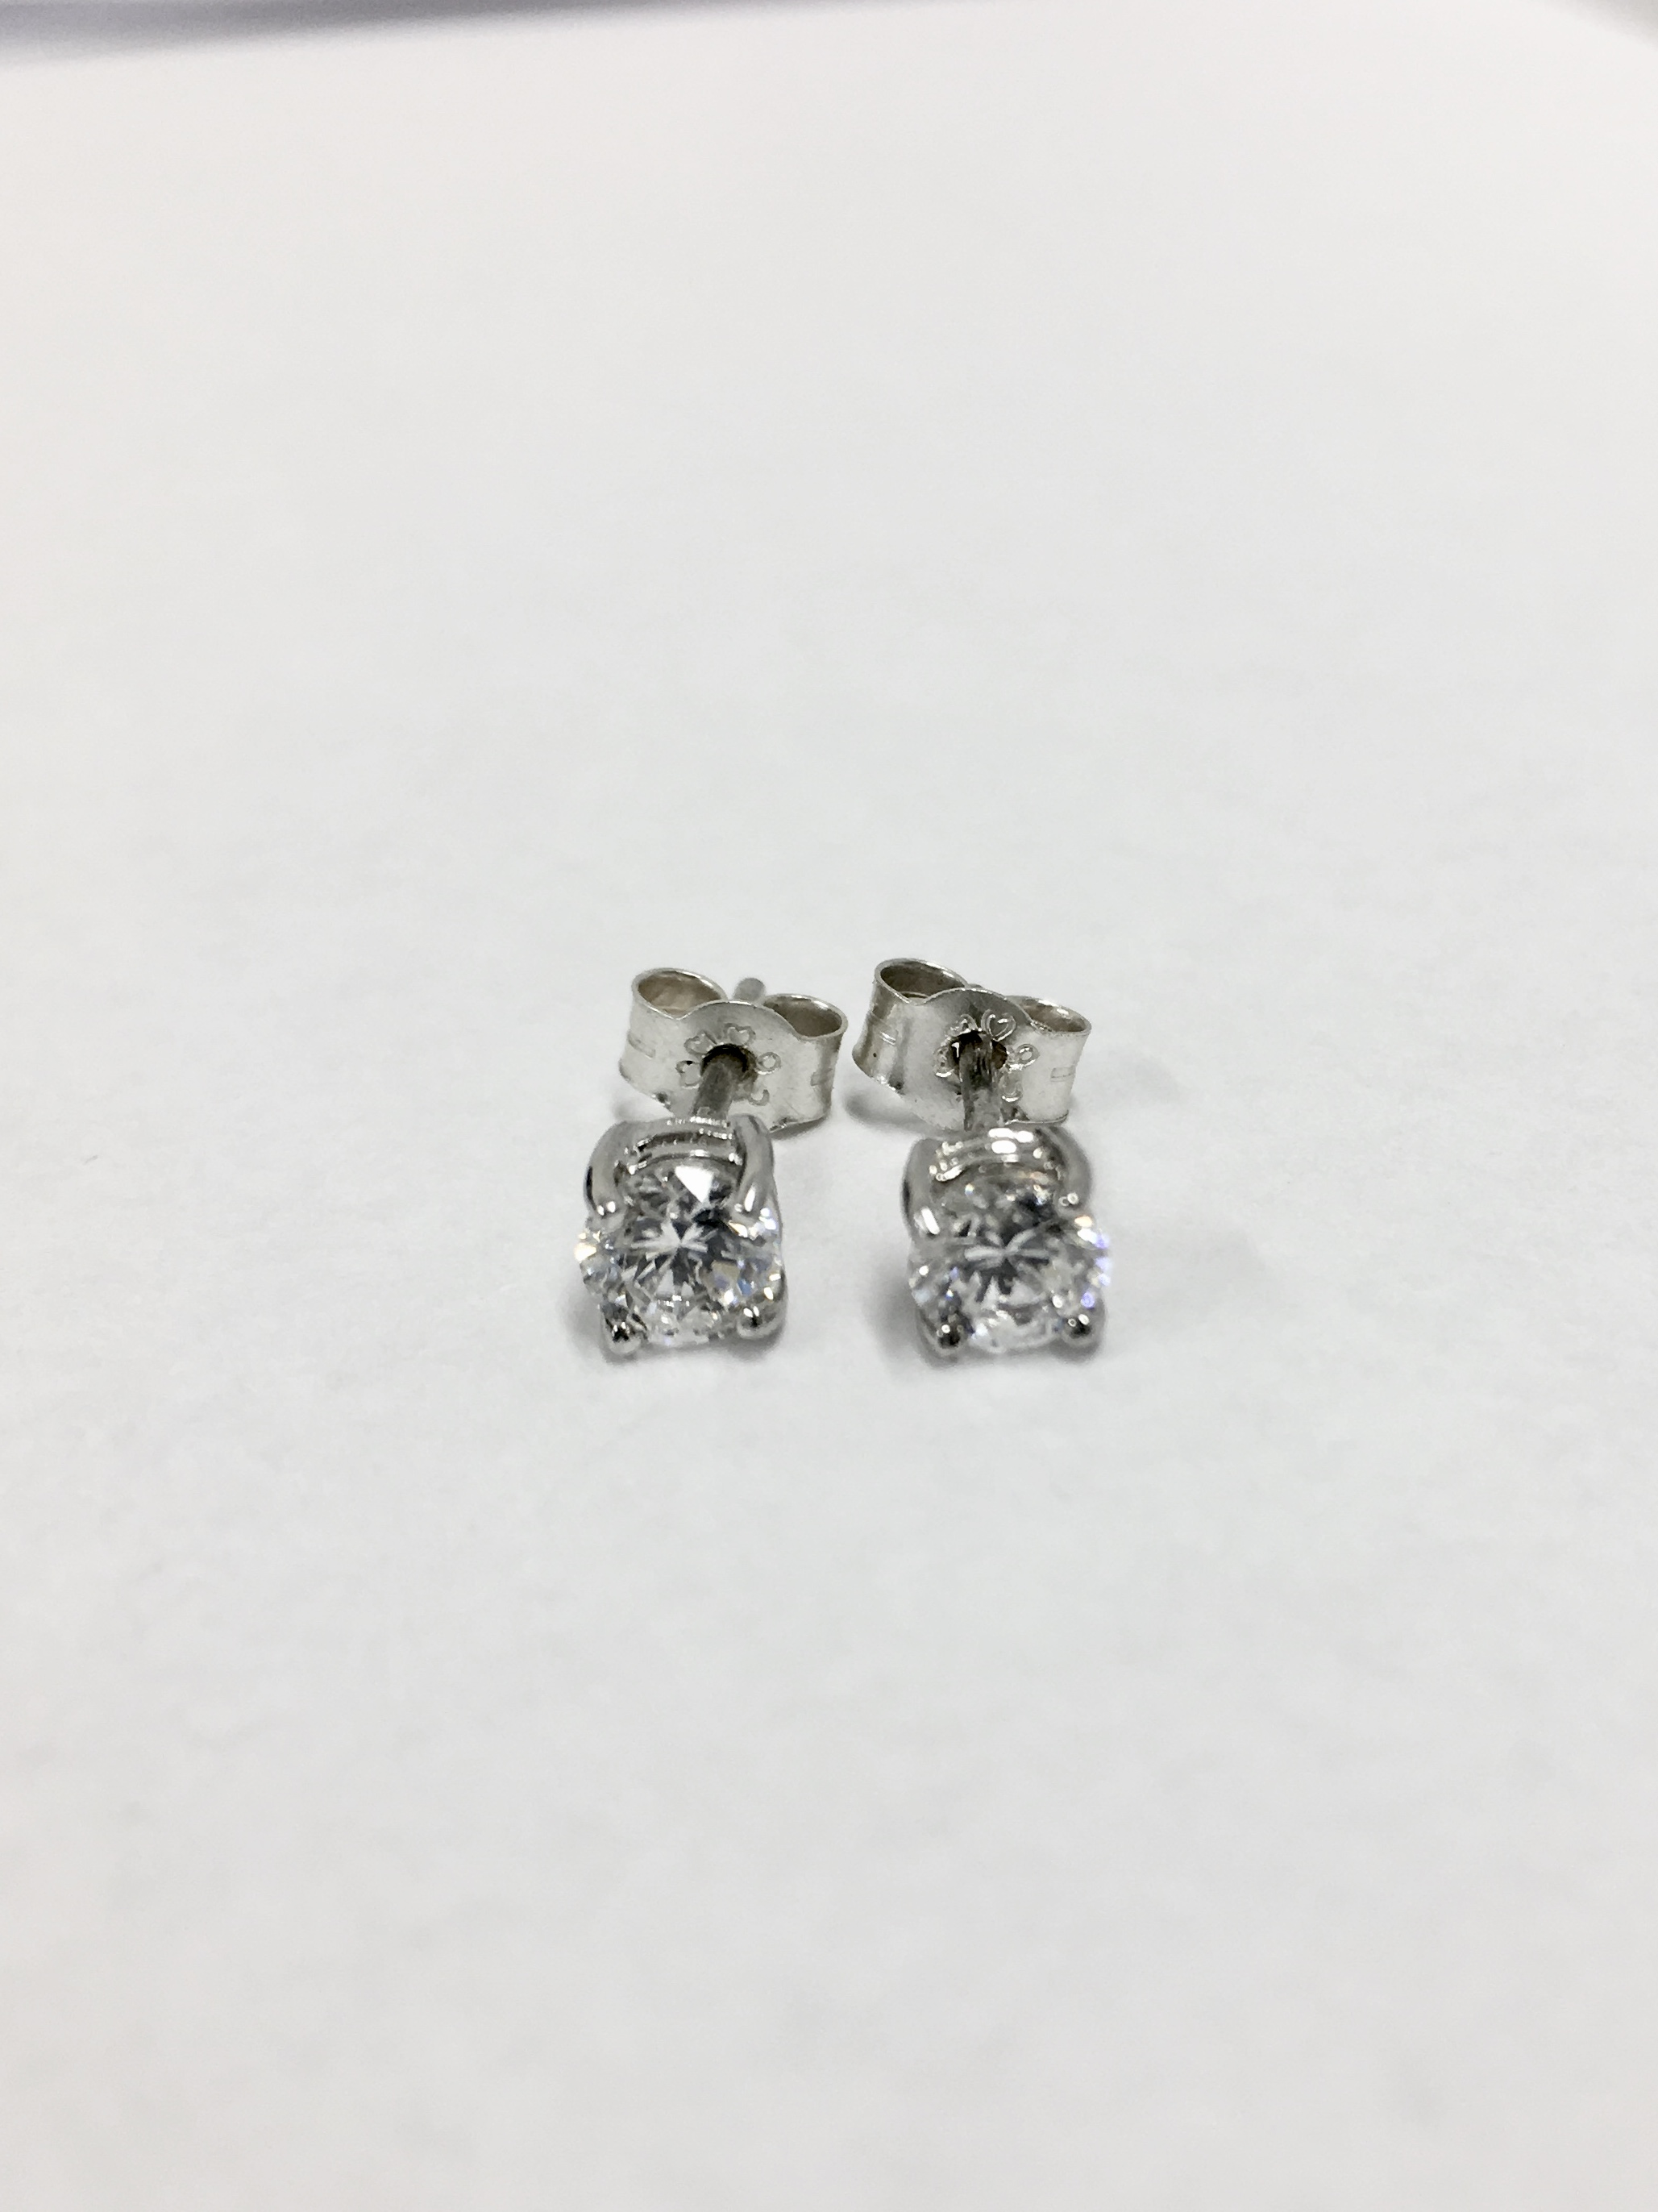 of zales solitaire diamond awesome carat stud earrings info men best elegant nice pesquisademercado s sale